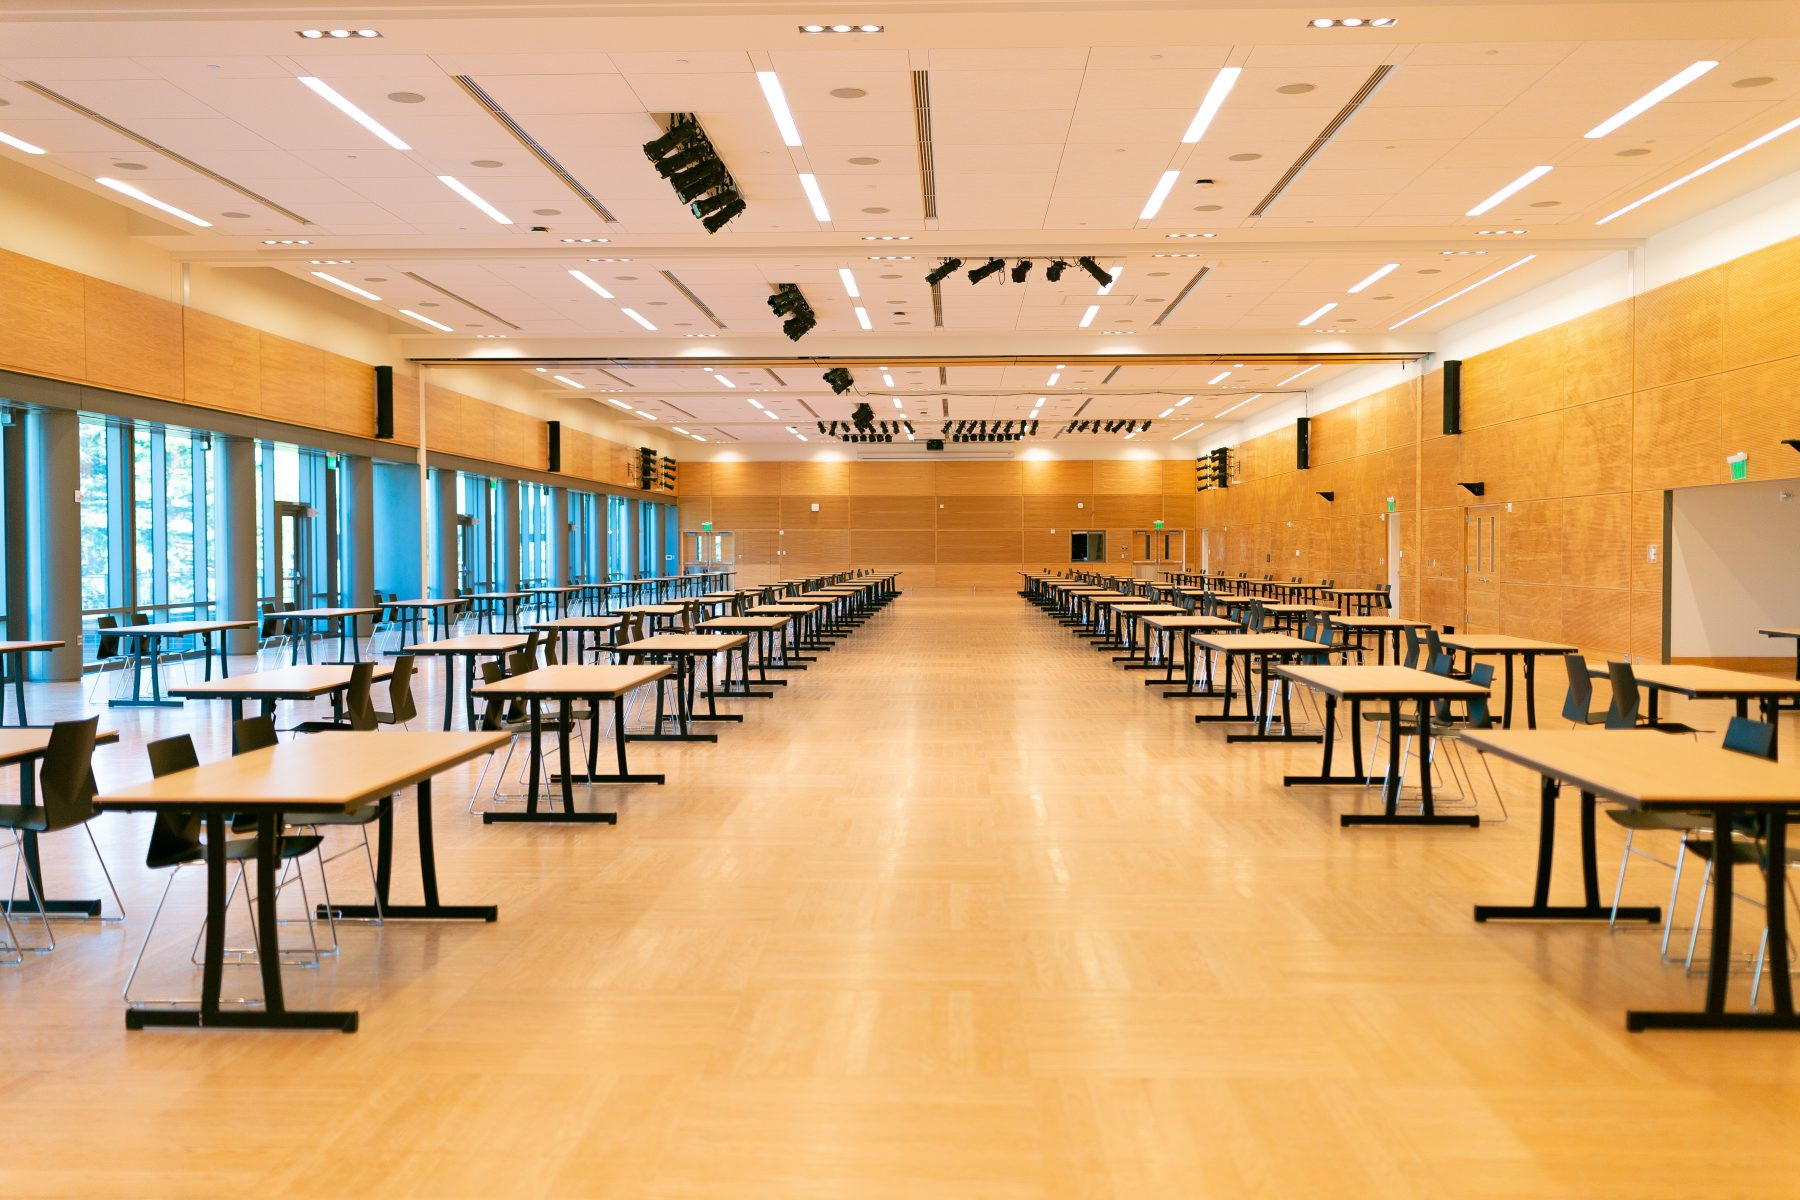 The maximum exhibit set in Both Ballrooms can accommodate 143 tables